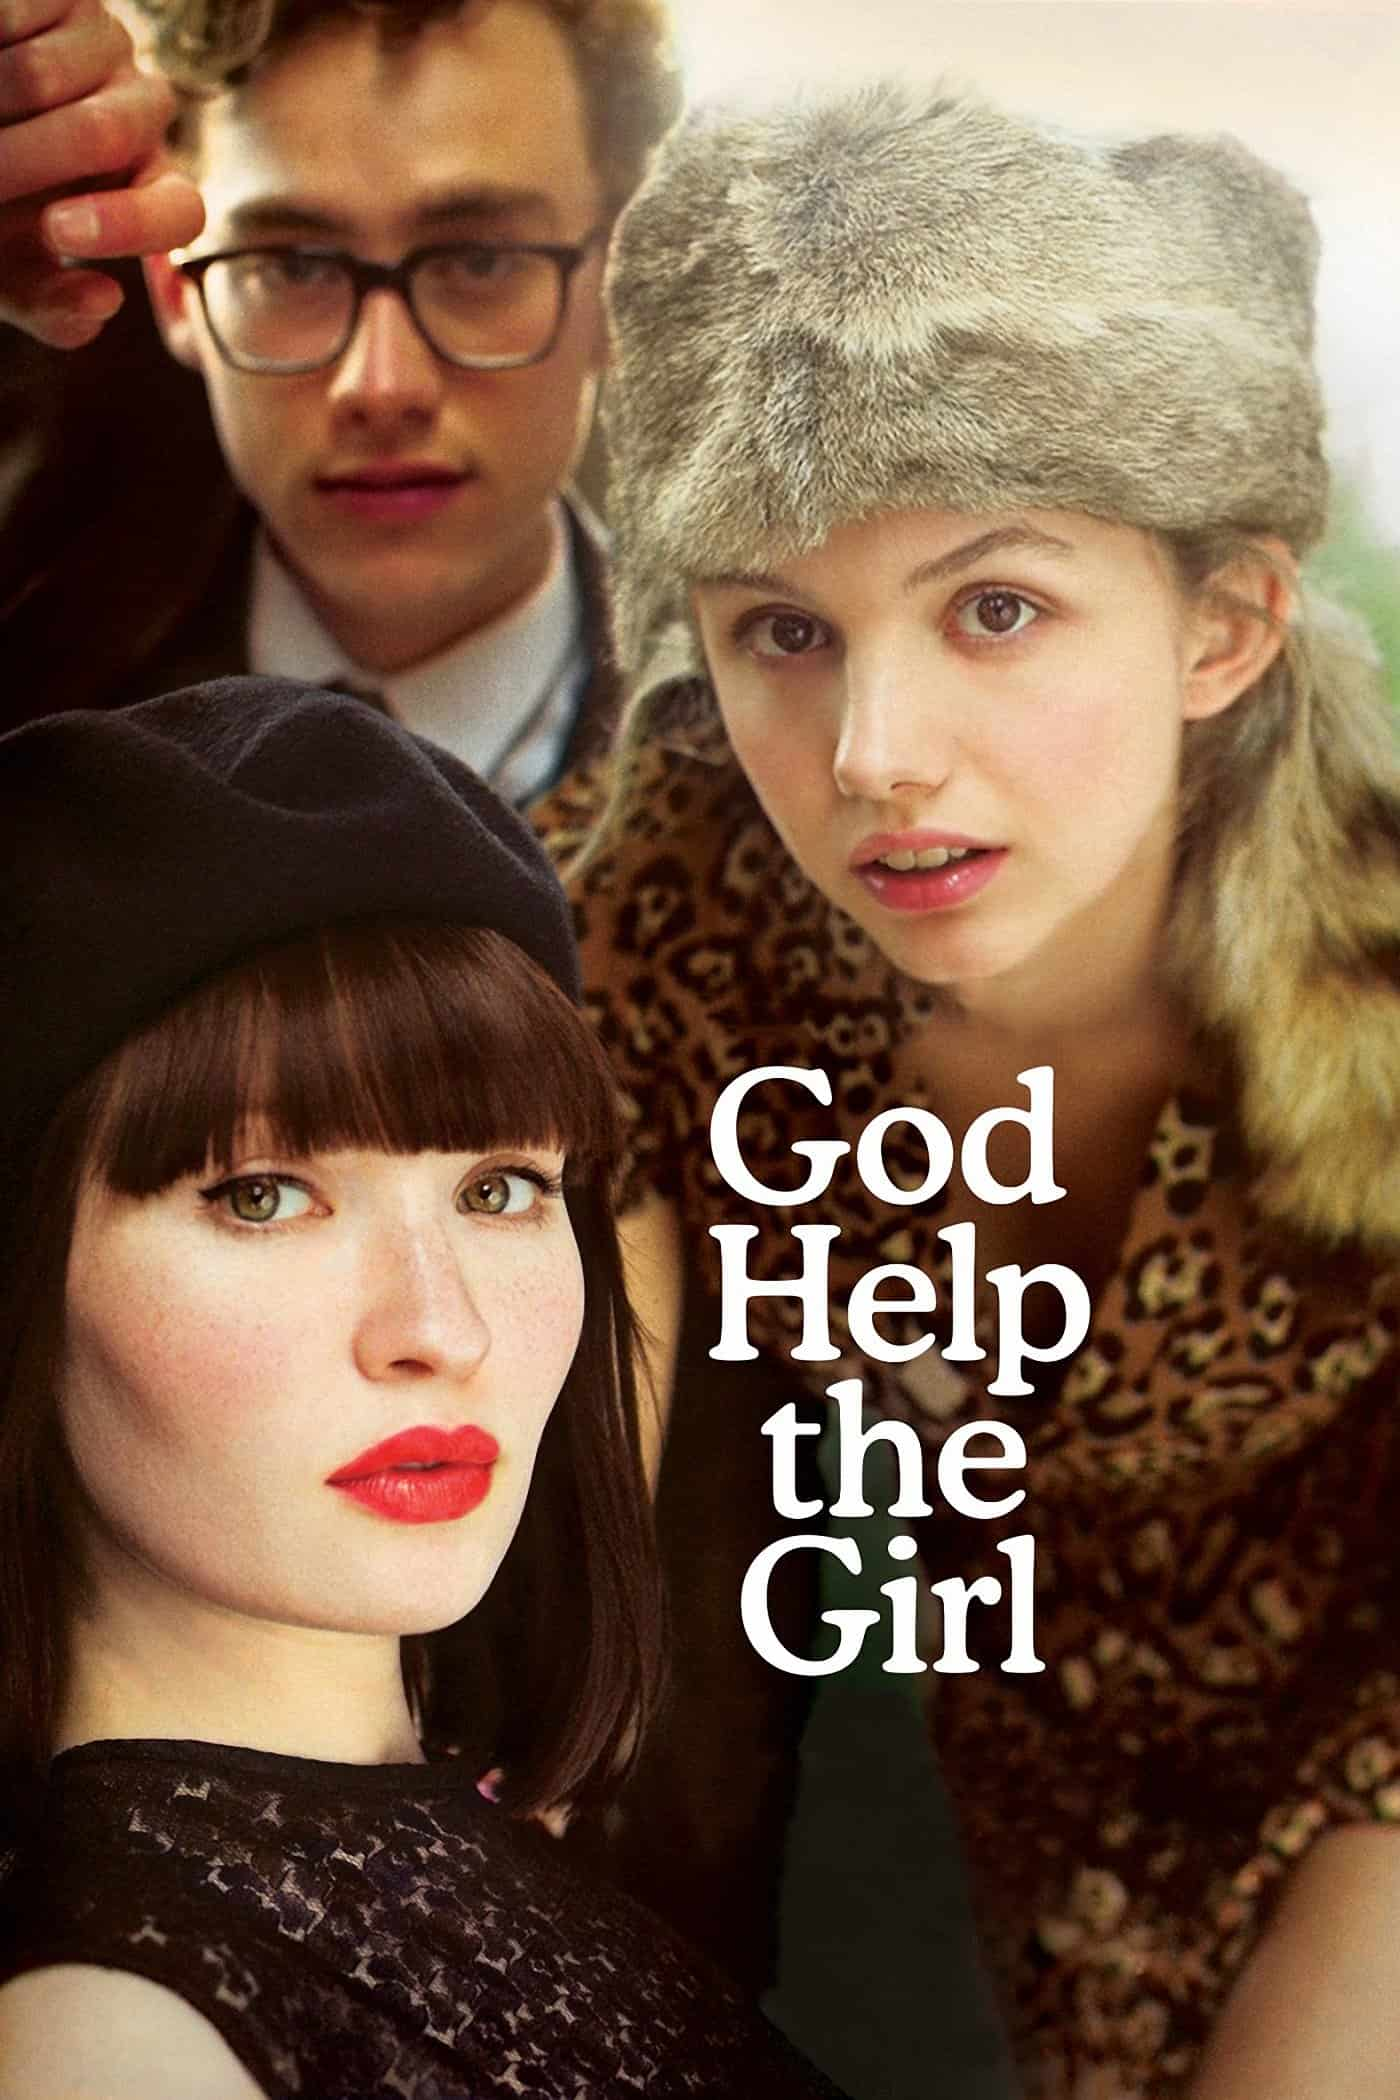 God Help the Girl, 2014